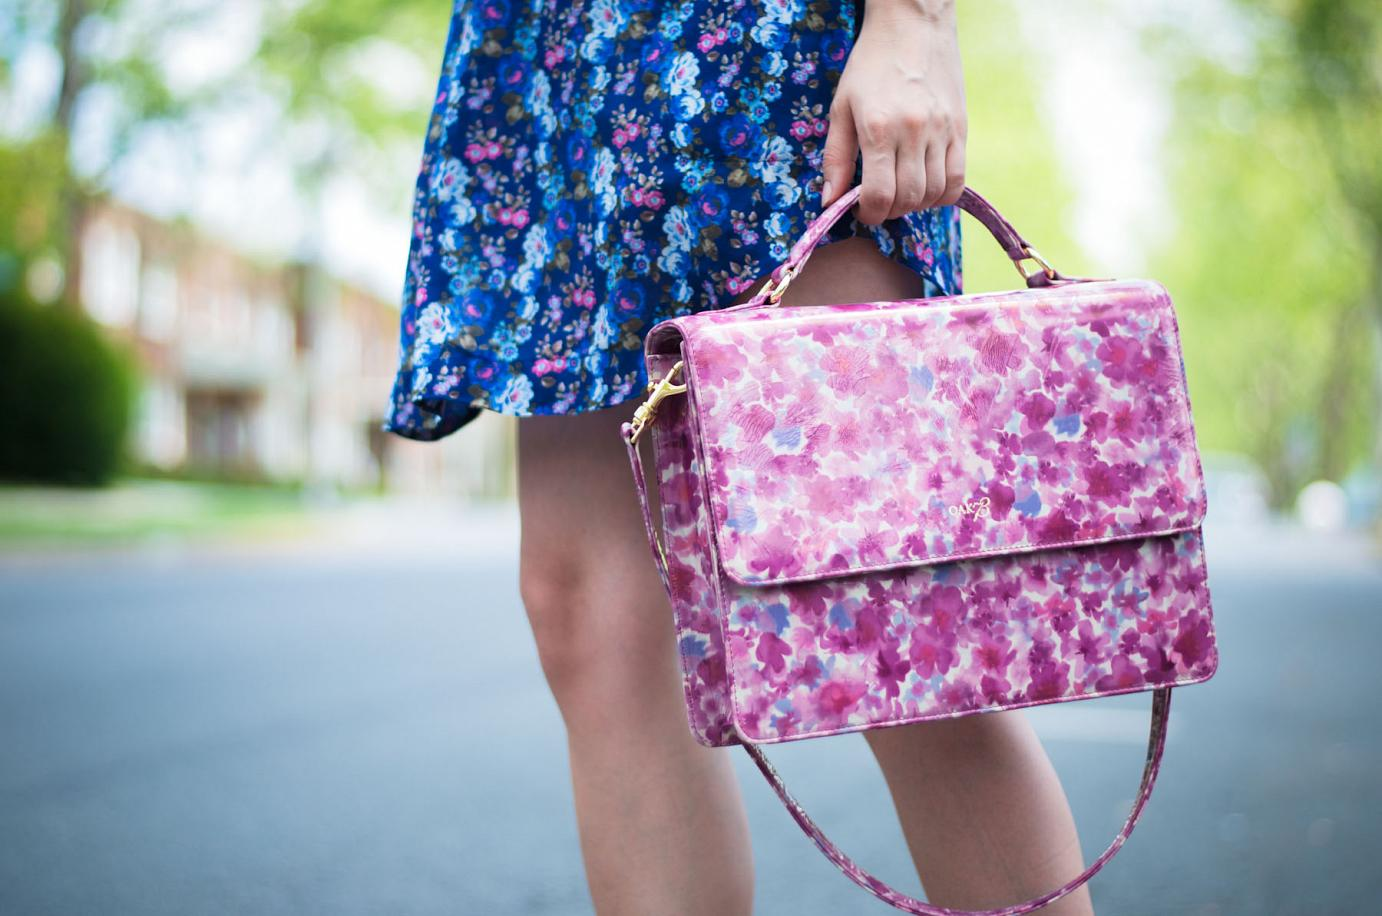 bittersweet colours, floral patterns, shirt dress, platform sandals, oak79 bag, floral bag, summer dress, summer trends, ray ban, nude sandals, street style